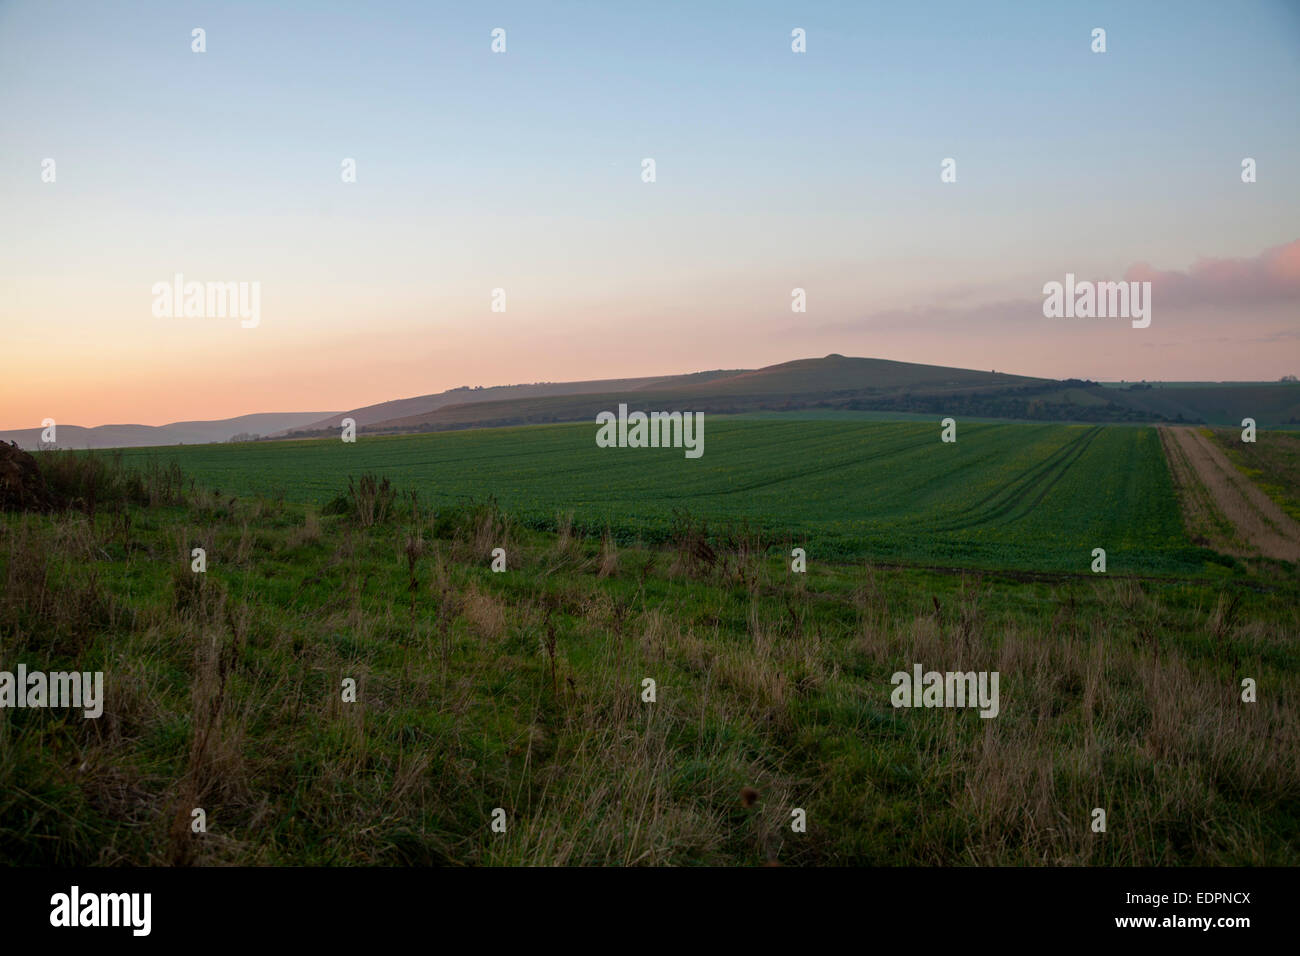 Chalk downland landscape at dusk with red sky from setting sun view to Milk HiIl, Alton Barnes, Wiltshire, England, - Stock Image